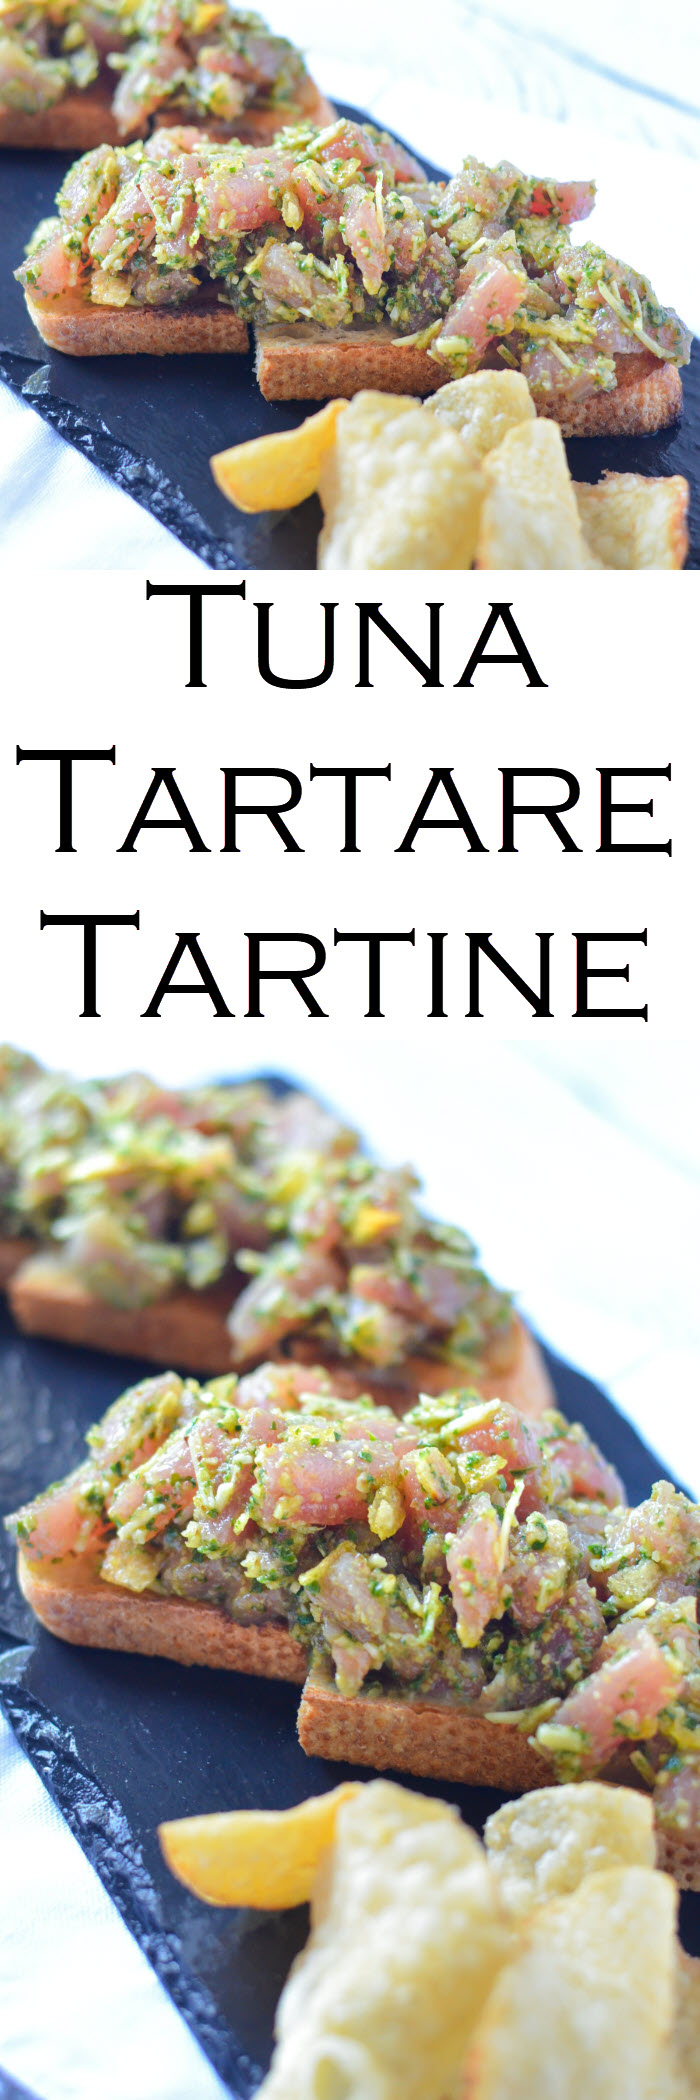 Tuna Tartare Toast Tartine. Sushi grade tuna steak mixed with delicious pesto, and a secret ingredient for flavor and crunch. Also sharing the secret to perfect pesto! - Zinque Cafe #LMrecipes #tuna #sushi #fish #appetizers #recipe #foodblog #foodblogger #healthy #pescetarian #healthyblogger #food